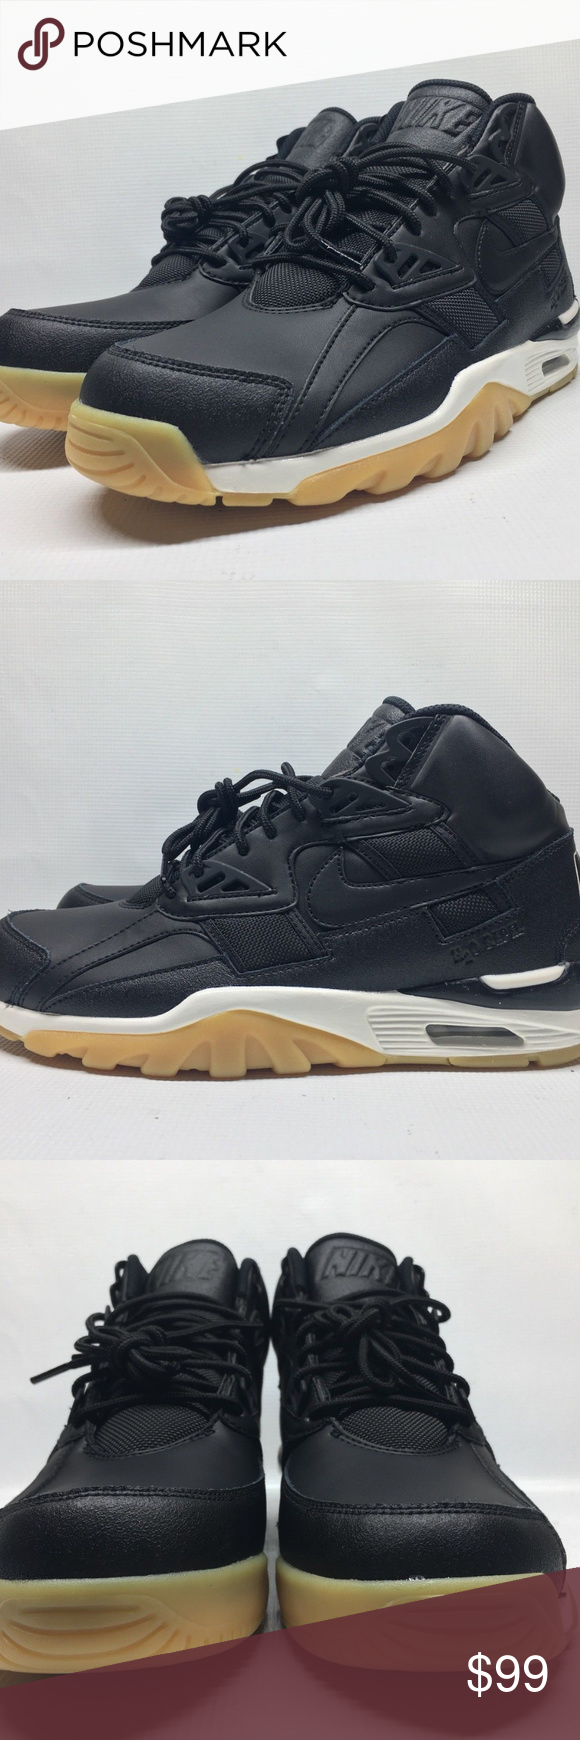 new styles f0587 e0bb4 Nike Air Trainer SC Winter Bo Jackson Black 9 Nike Air Trainer SC Winter Bo  Jackson